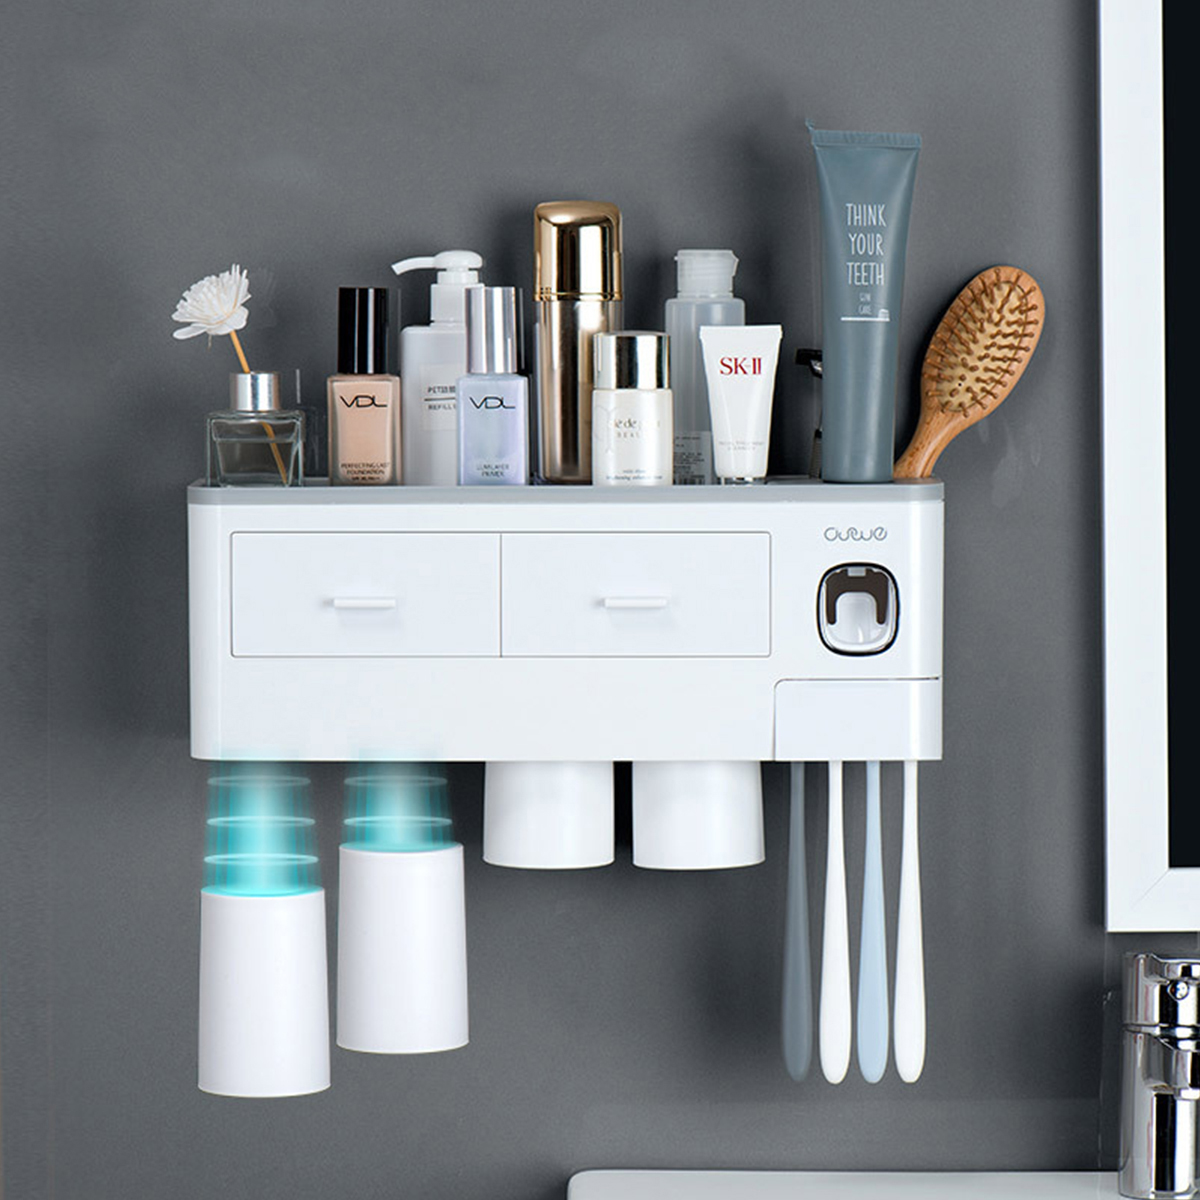 2/3Cup Magnetic Toothbrush Phone Holder Automatic Toothpaste Dispenser Wall  Mounted Storage Rack | Alexnld.com